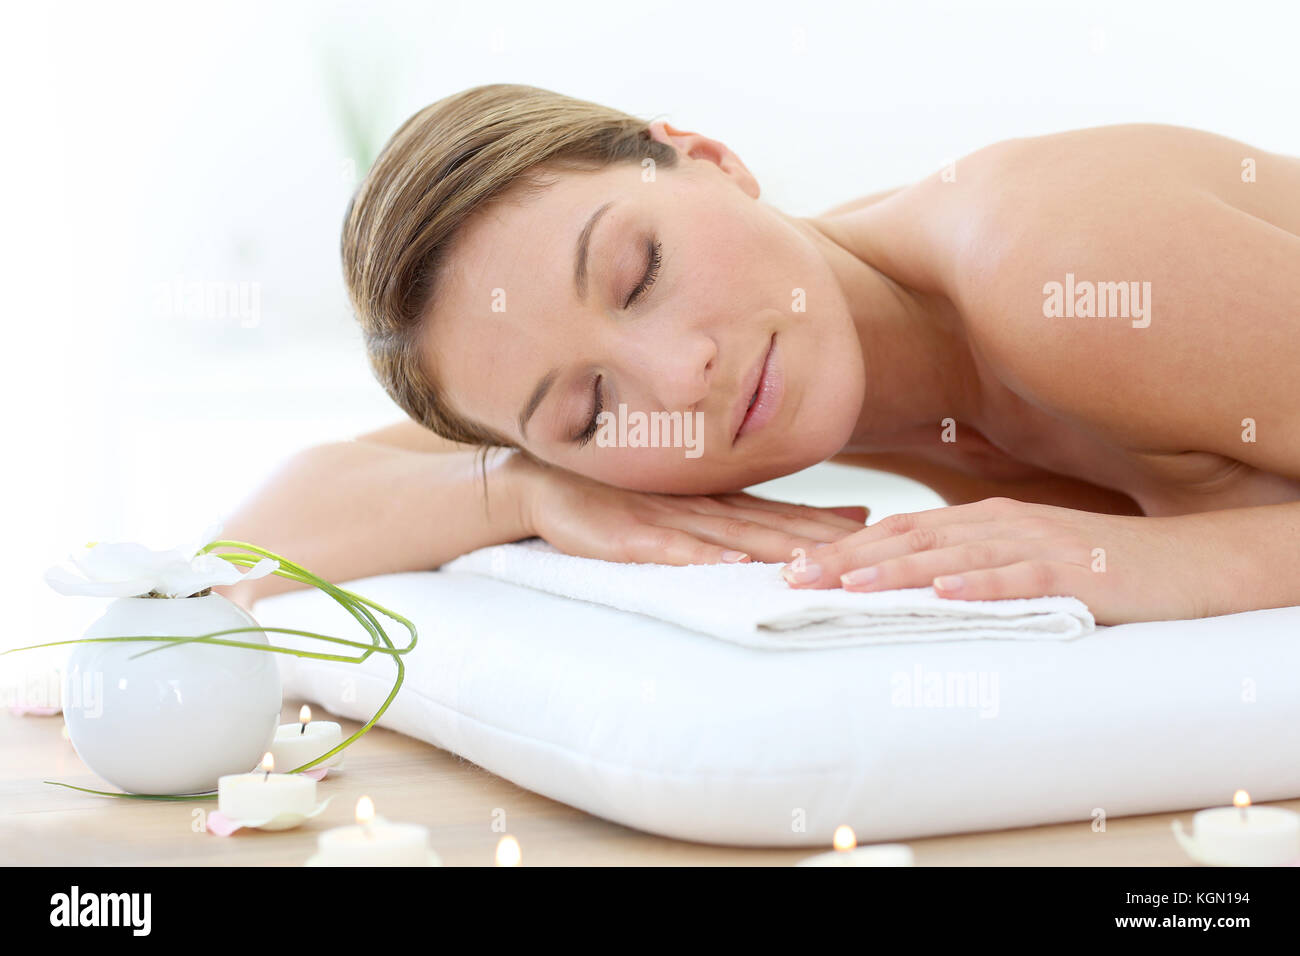 Attractive woman relaxing with eyes shut on massage bed - Stock Image